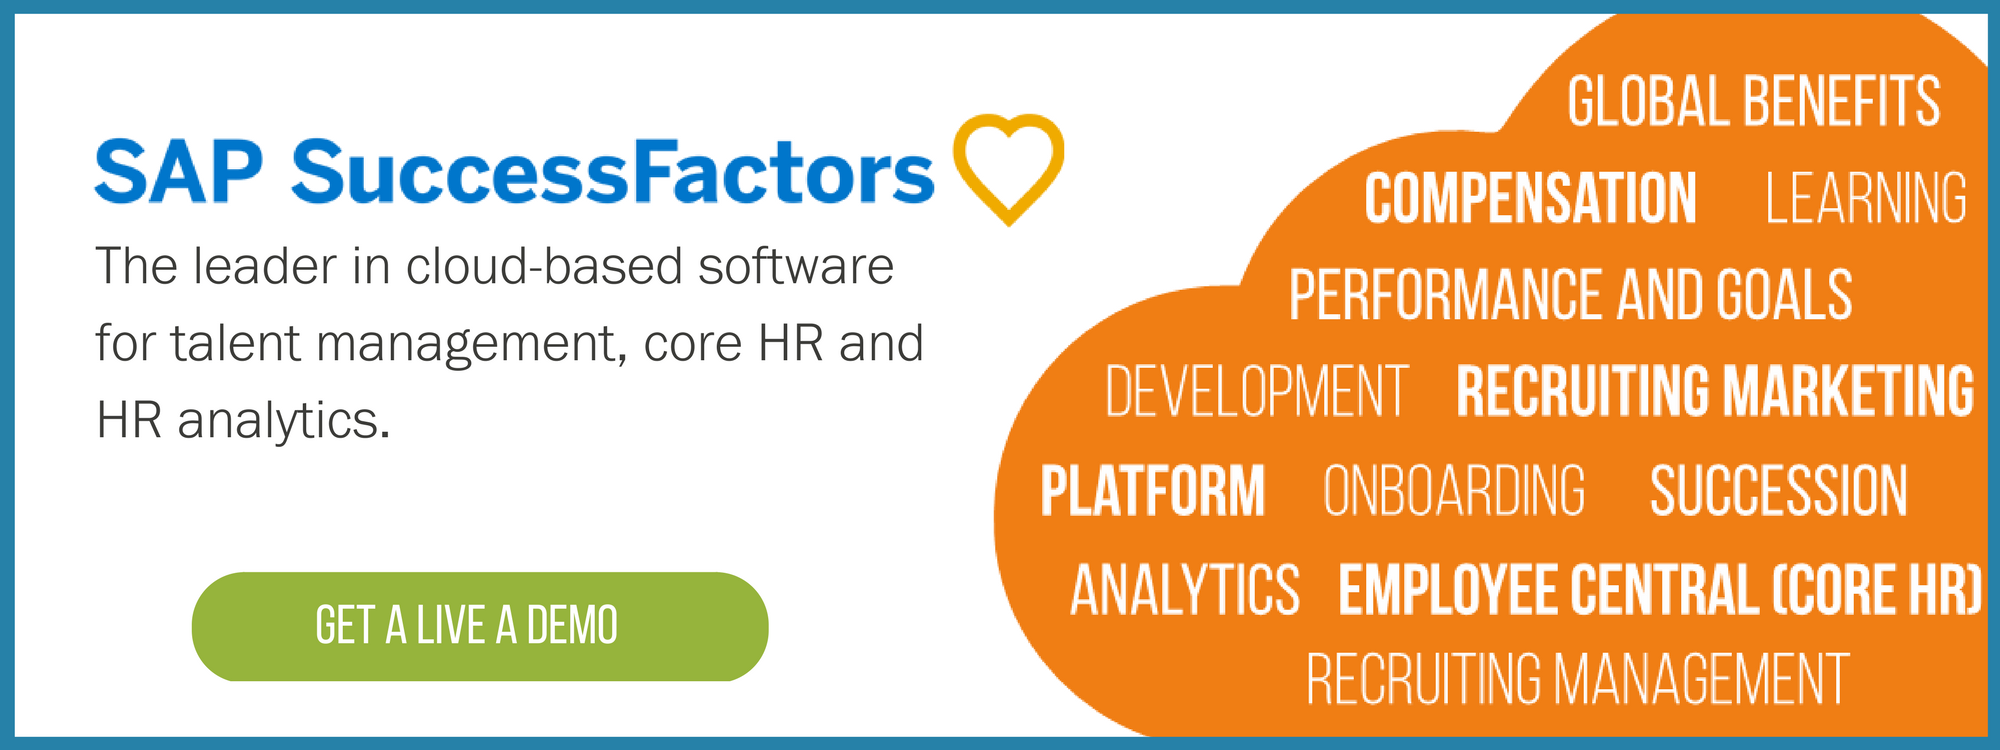 Learn more about SAP SuccessFactors